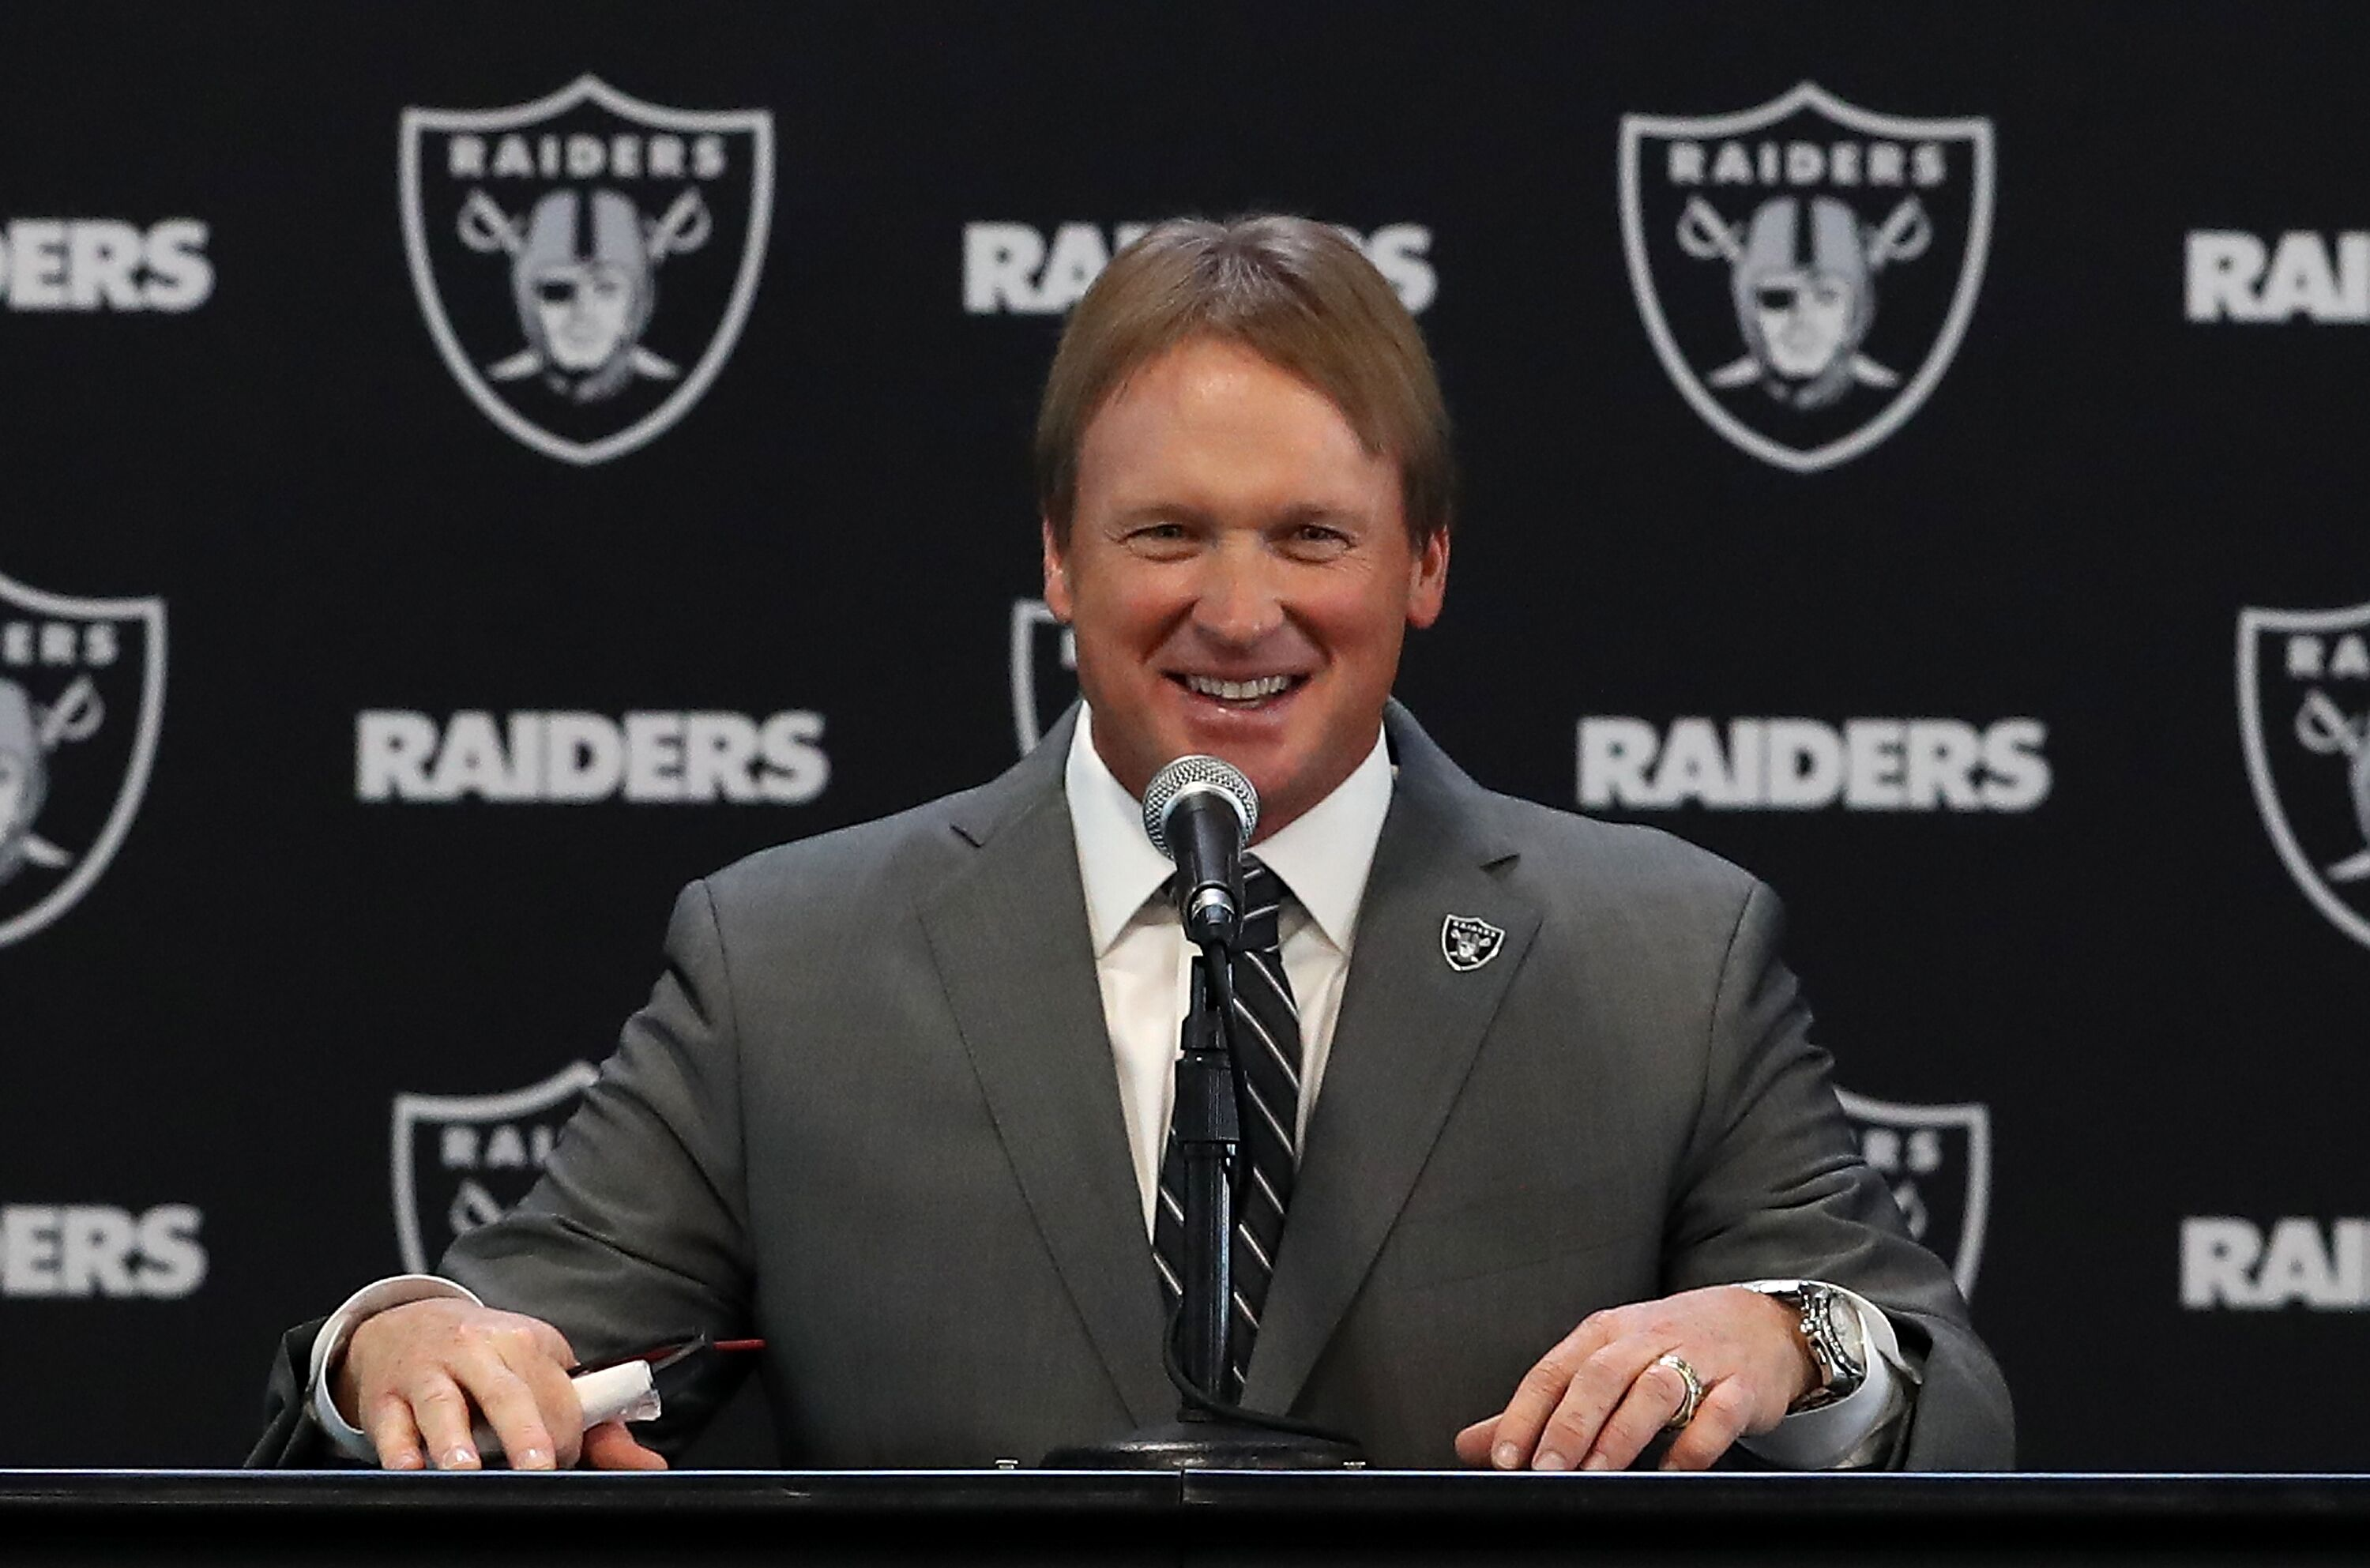 903070700-oakland-raiders-introduce-jon-gruden.jpg